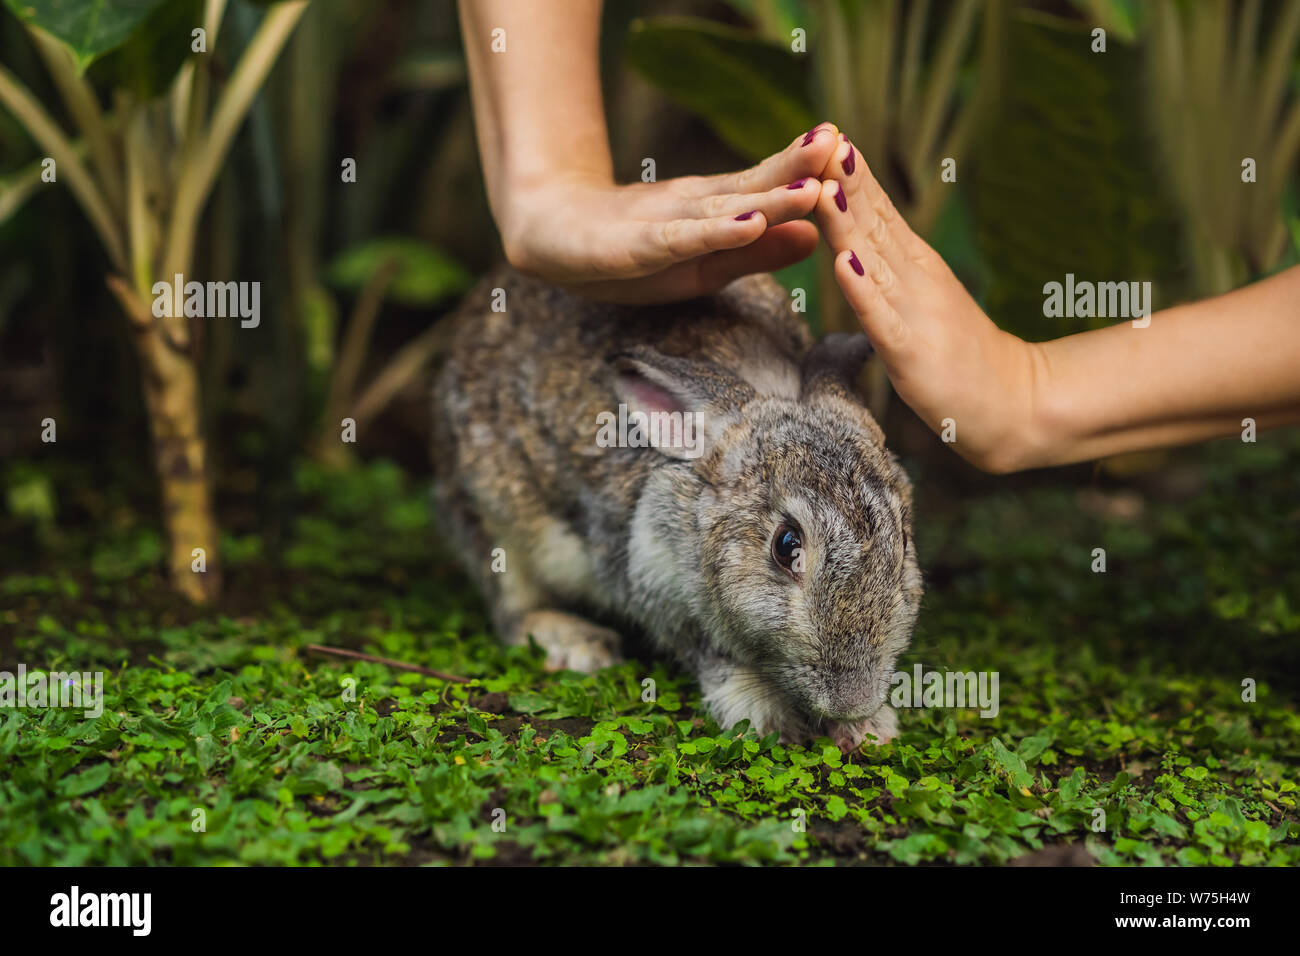 Hands protect rabbit. Cosmetics test on rabbit animal. Cruelty free and stop animal abuse concept Stock Photo